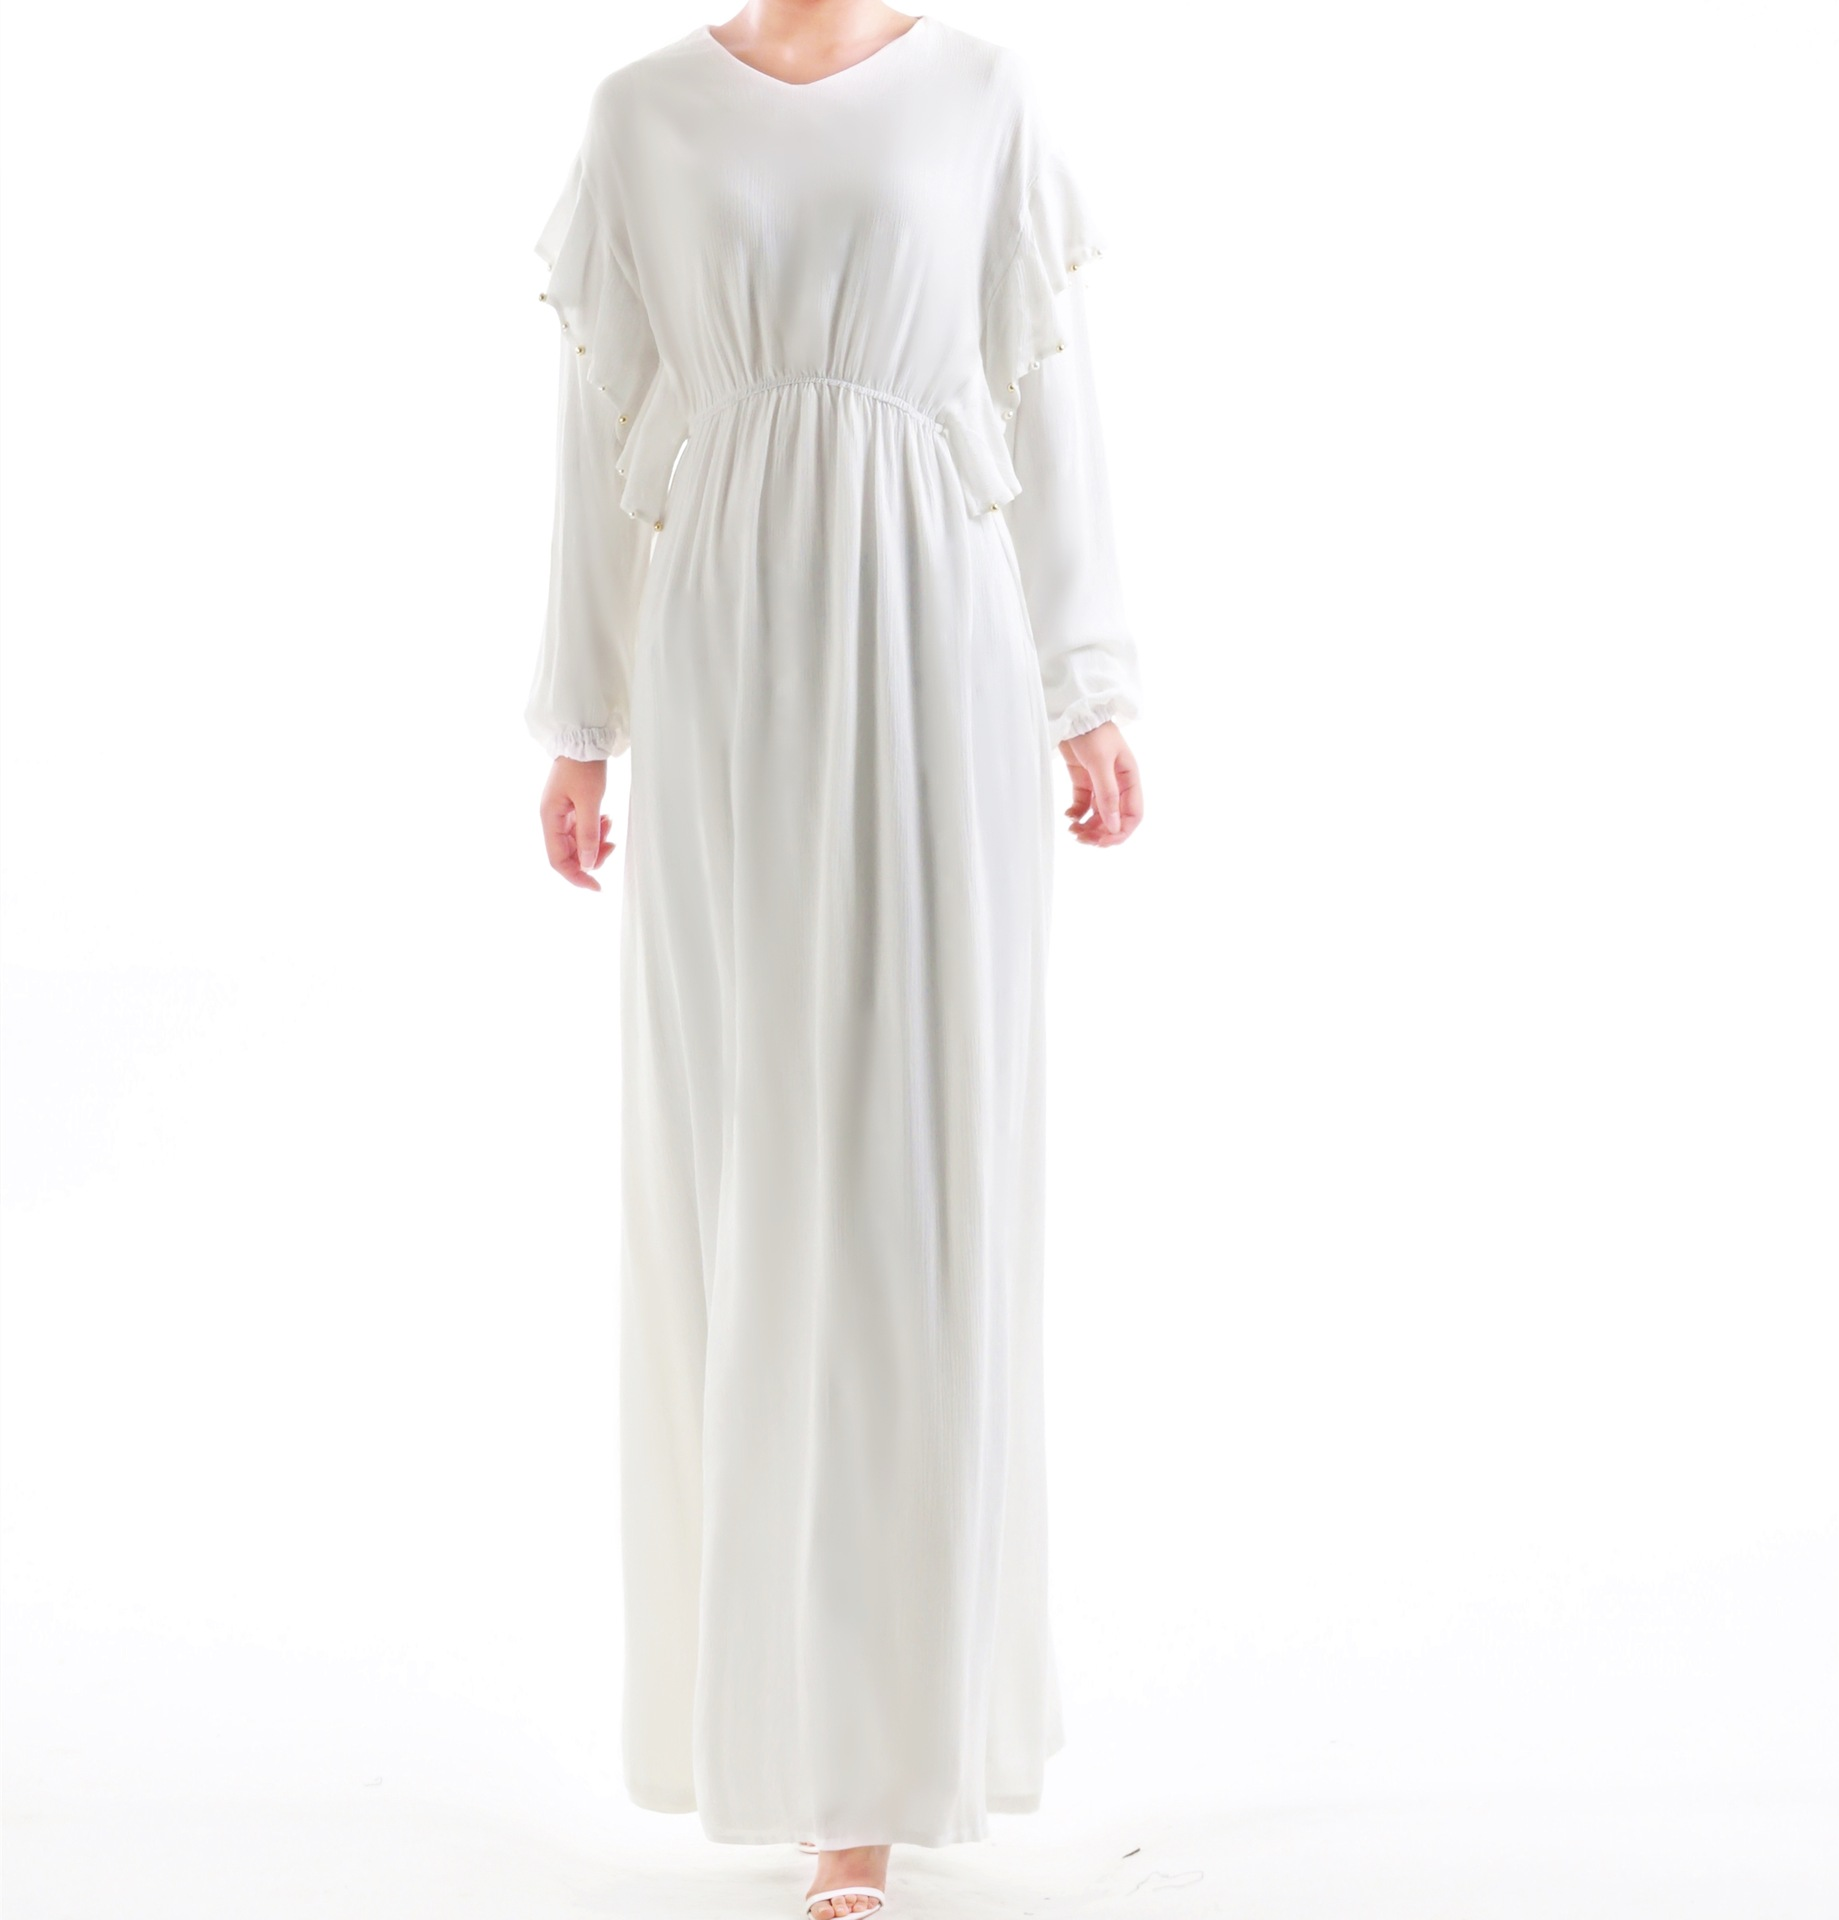 Liuxiang wrinkled pearl bat sleeve dress - white without headscarf